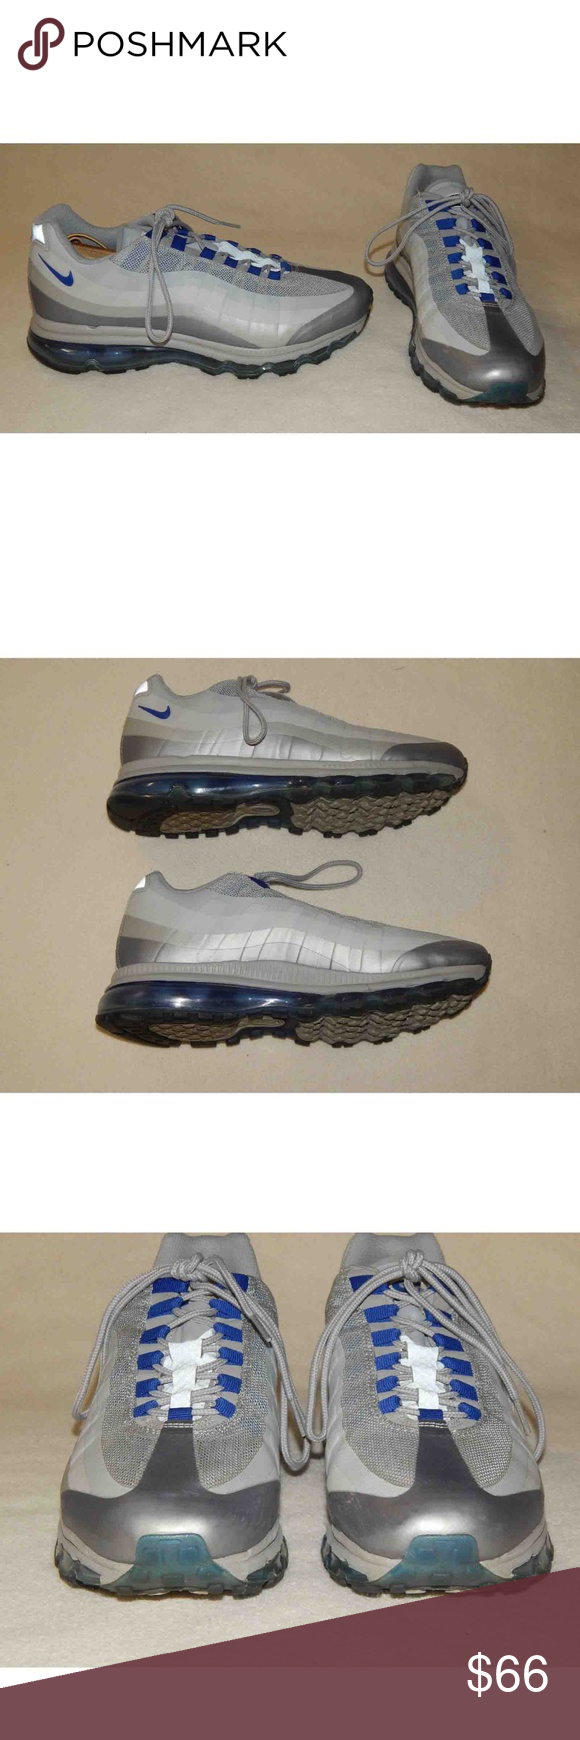 7c9f8c3b5af7 Nike Air Max Mens 10.5 Running Shoes Nike Air Max (+) 95 BB Running ...